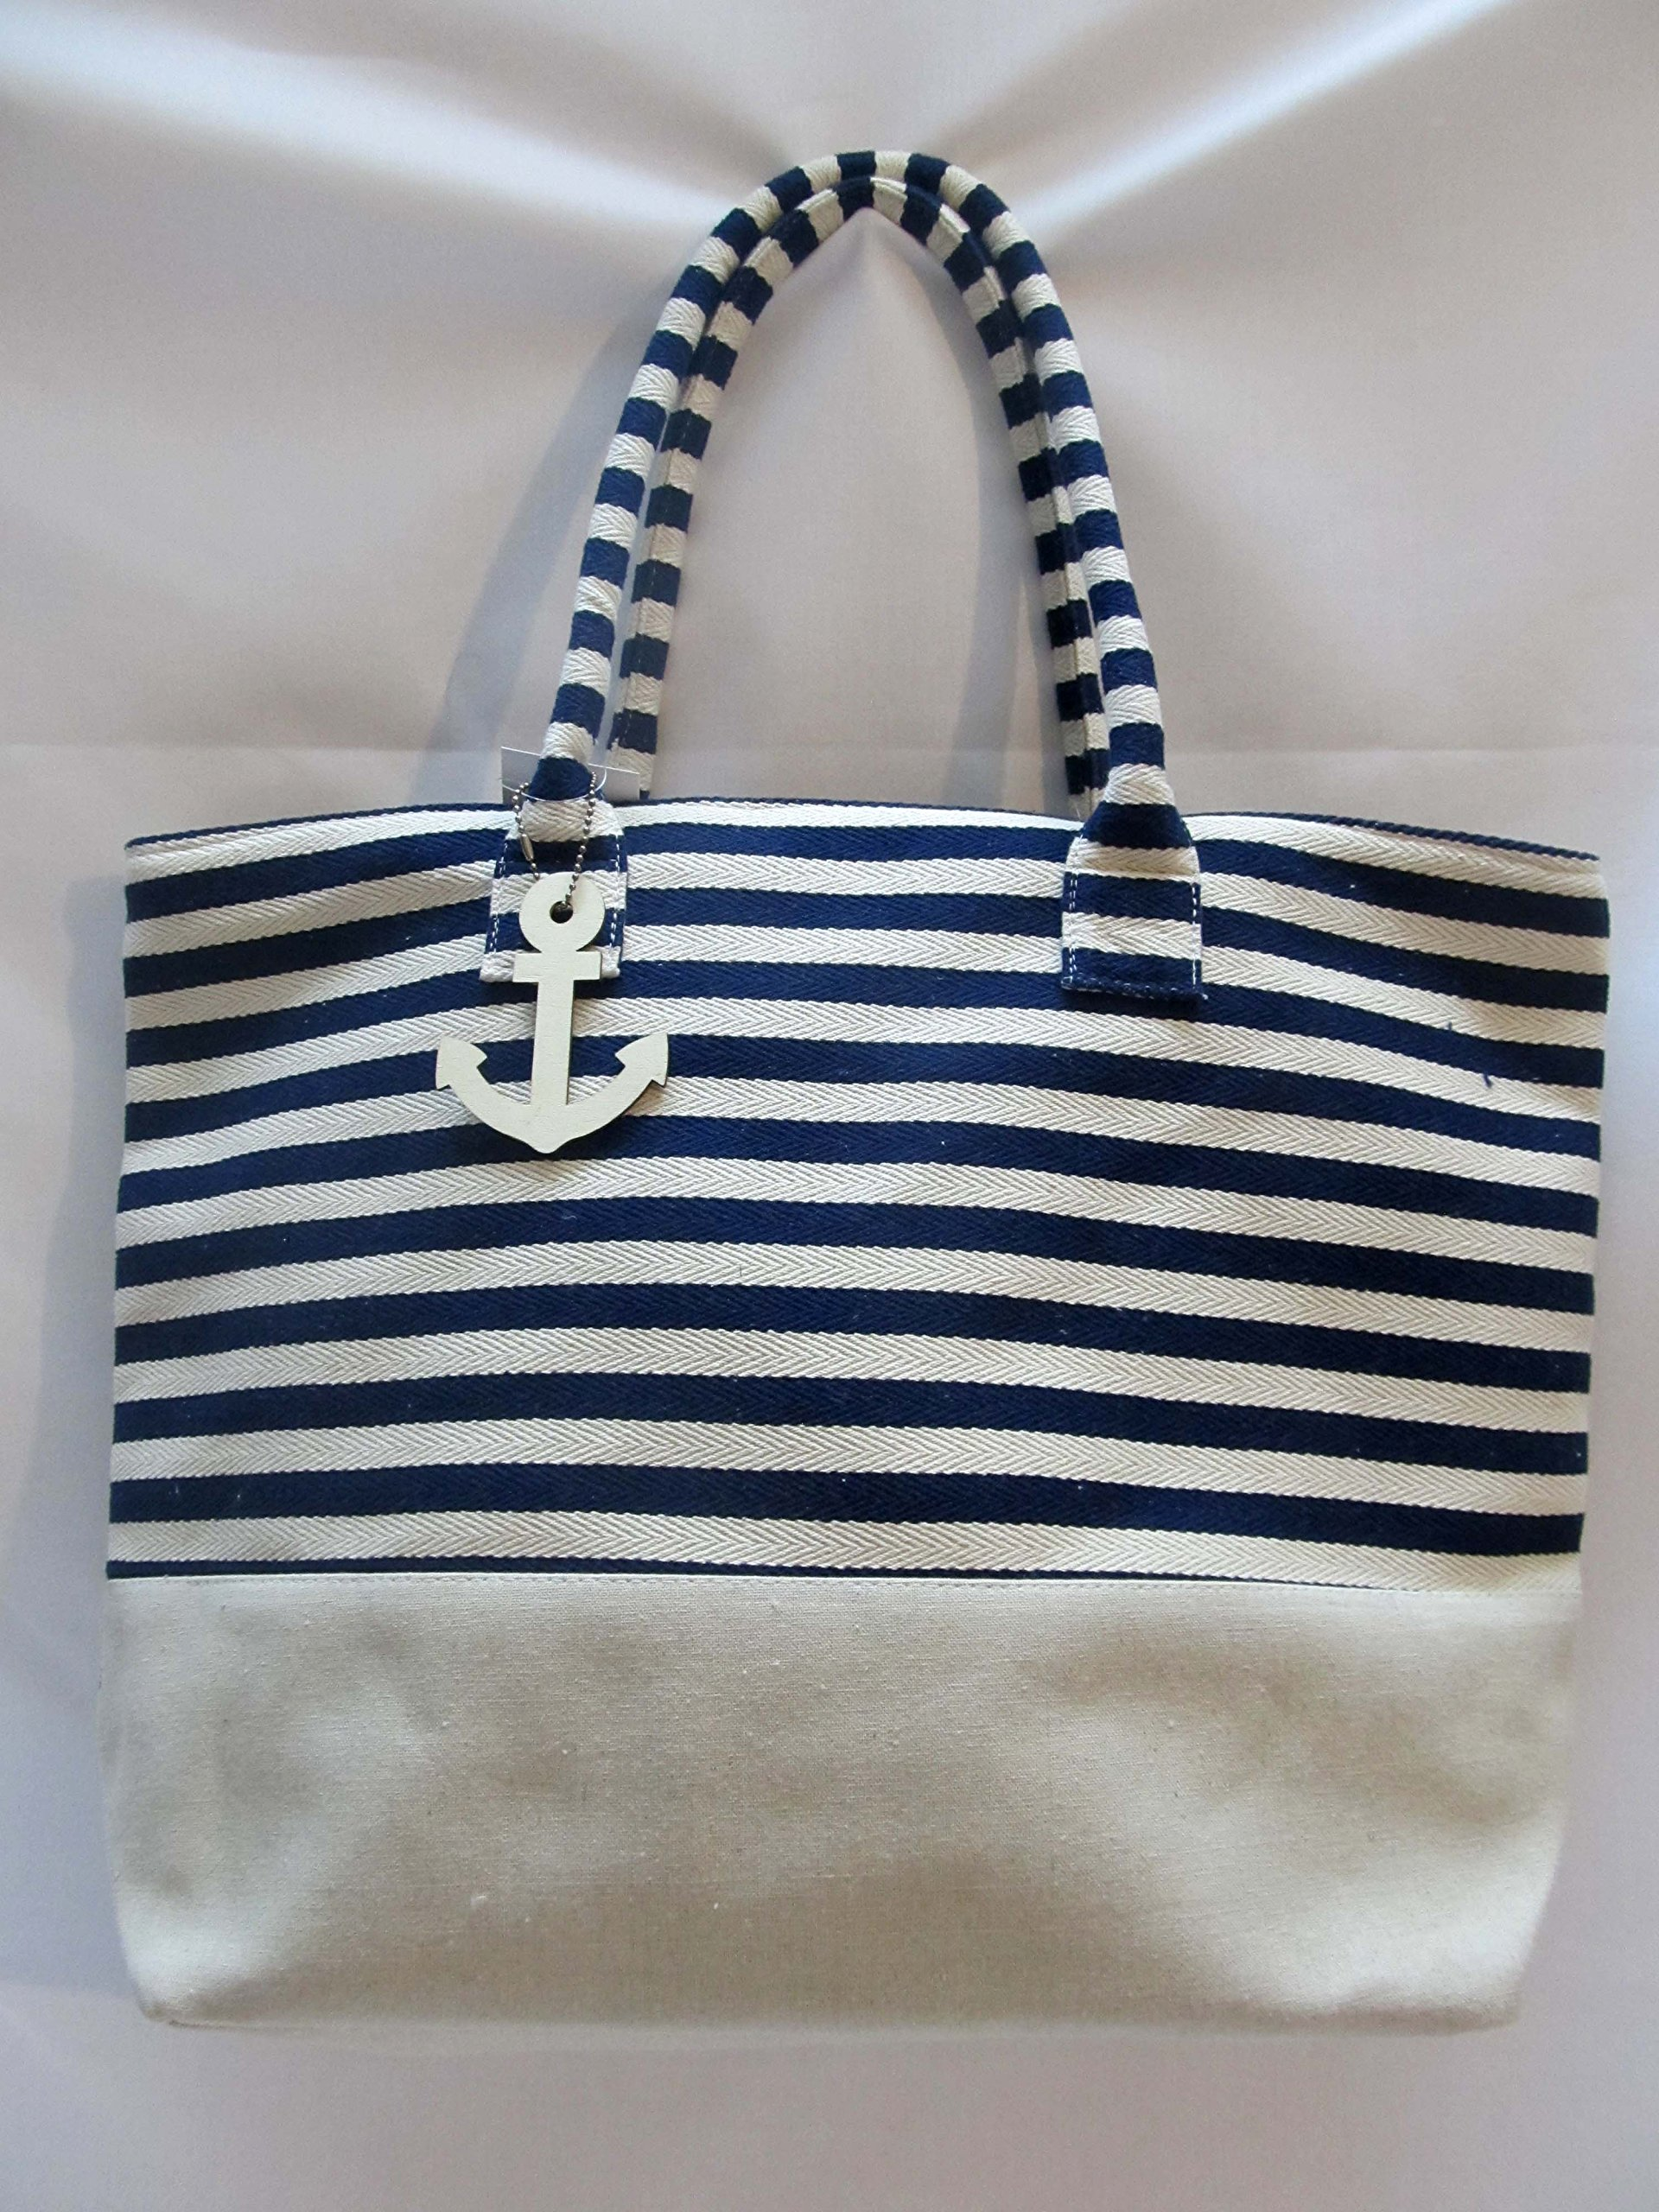 Heavy Duty Cotton Tote Bag Canvas Zippered Shopping Tote 20 Inch -NAVY BLUE